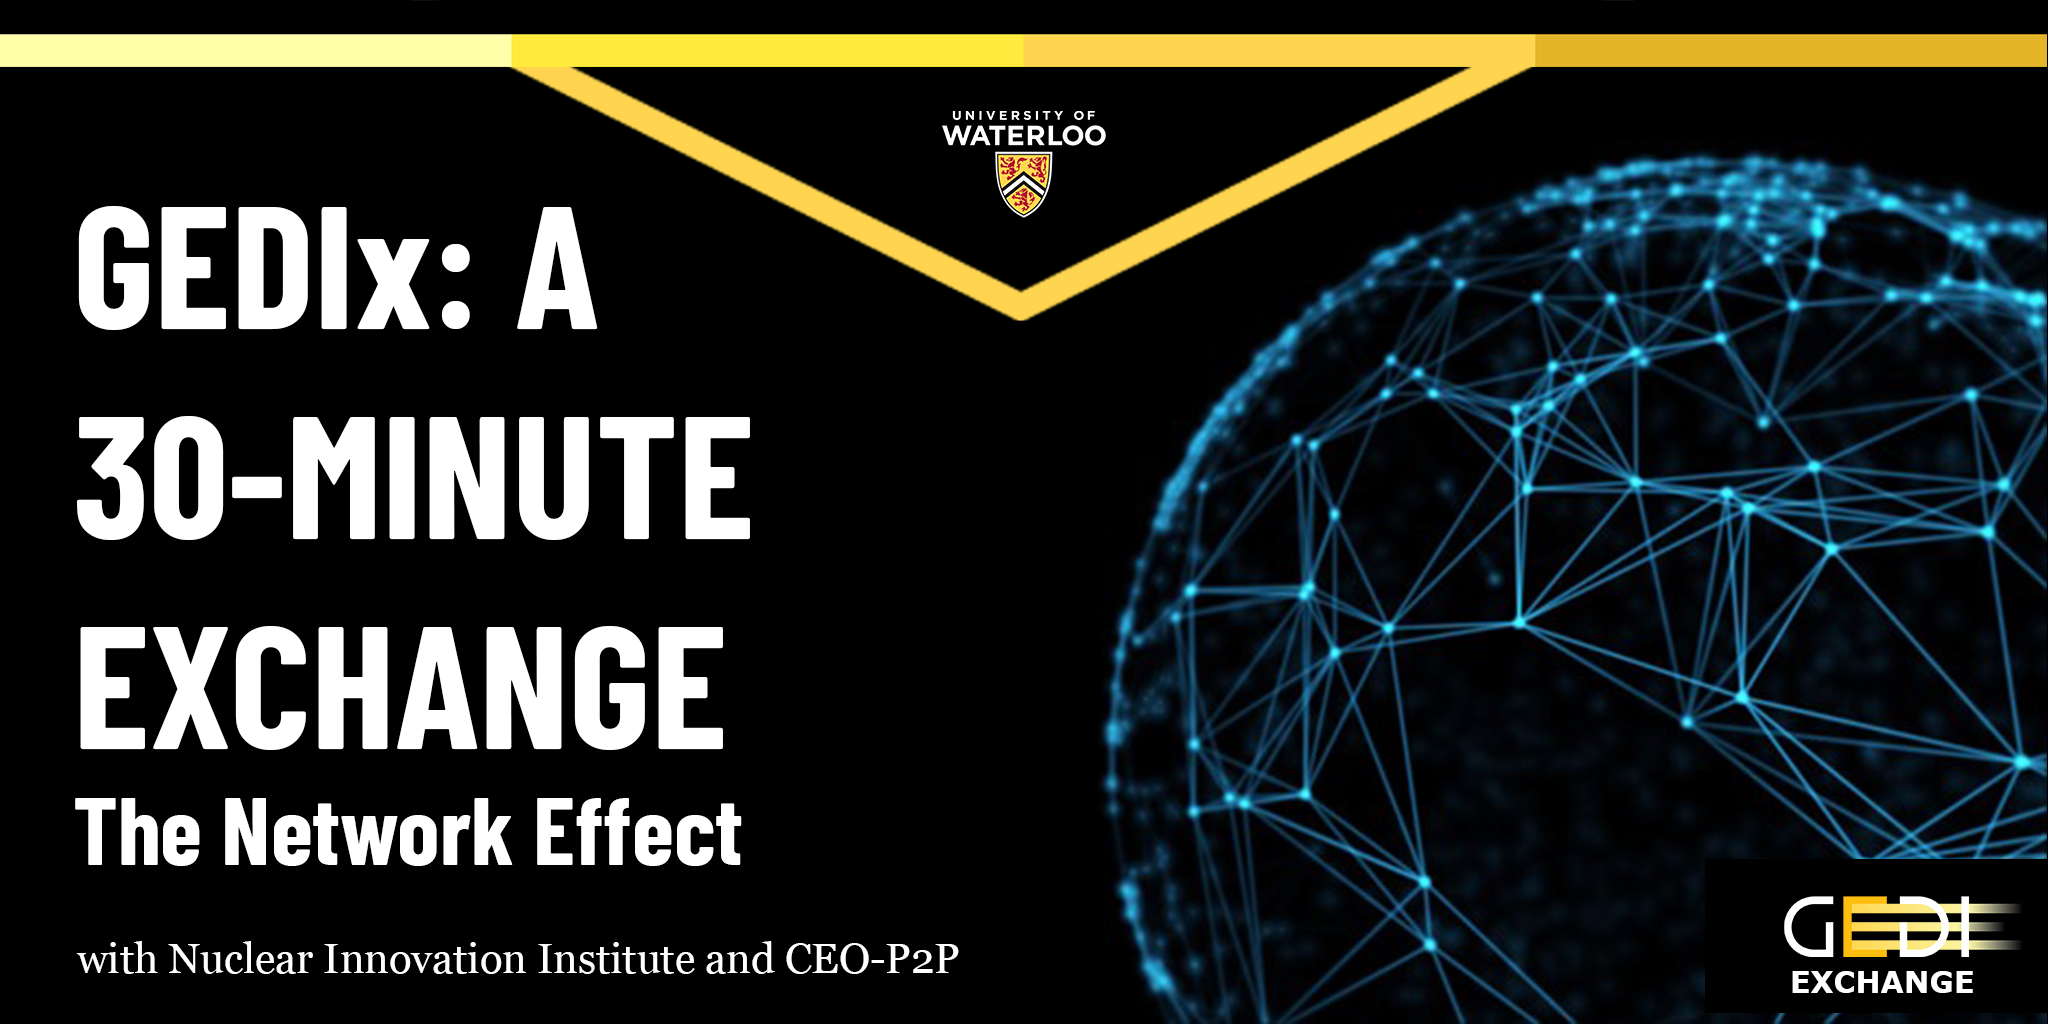 GEDIx: A 30-minute Exchange - The Network Effect with Nuclear Innovation Institute, CEO-P2P and GEDI